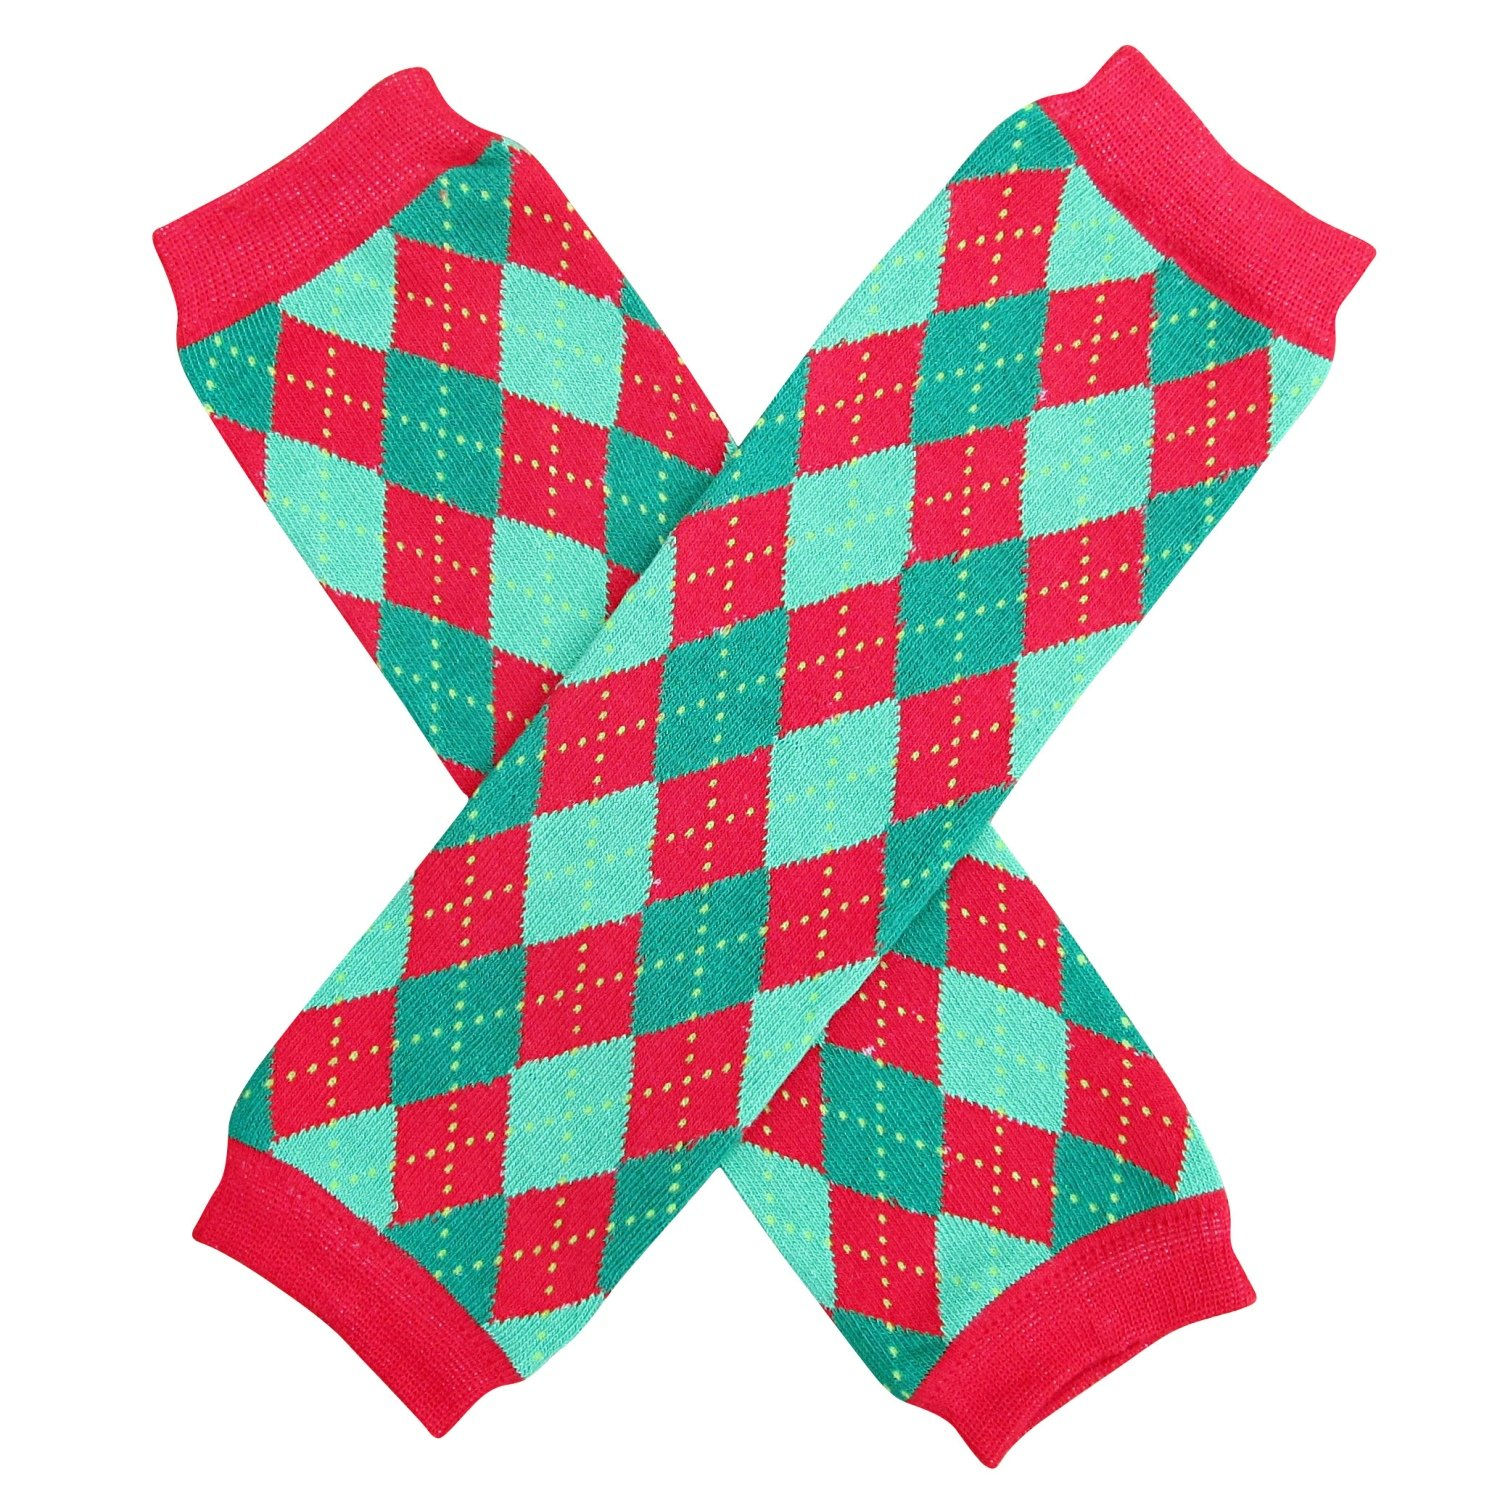 Christmas Holiday Winter Party Styles Leg Warmers - One Size - Baby, Toddler, Girl, Boy CLW-ArgI